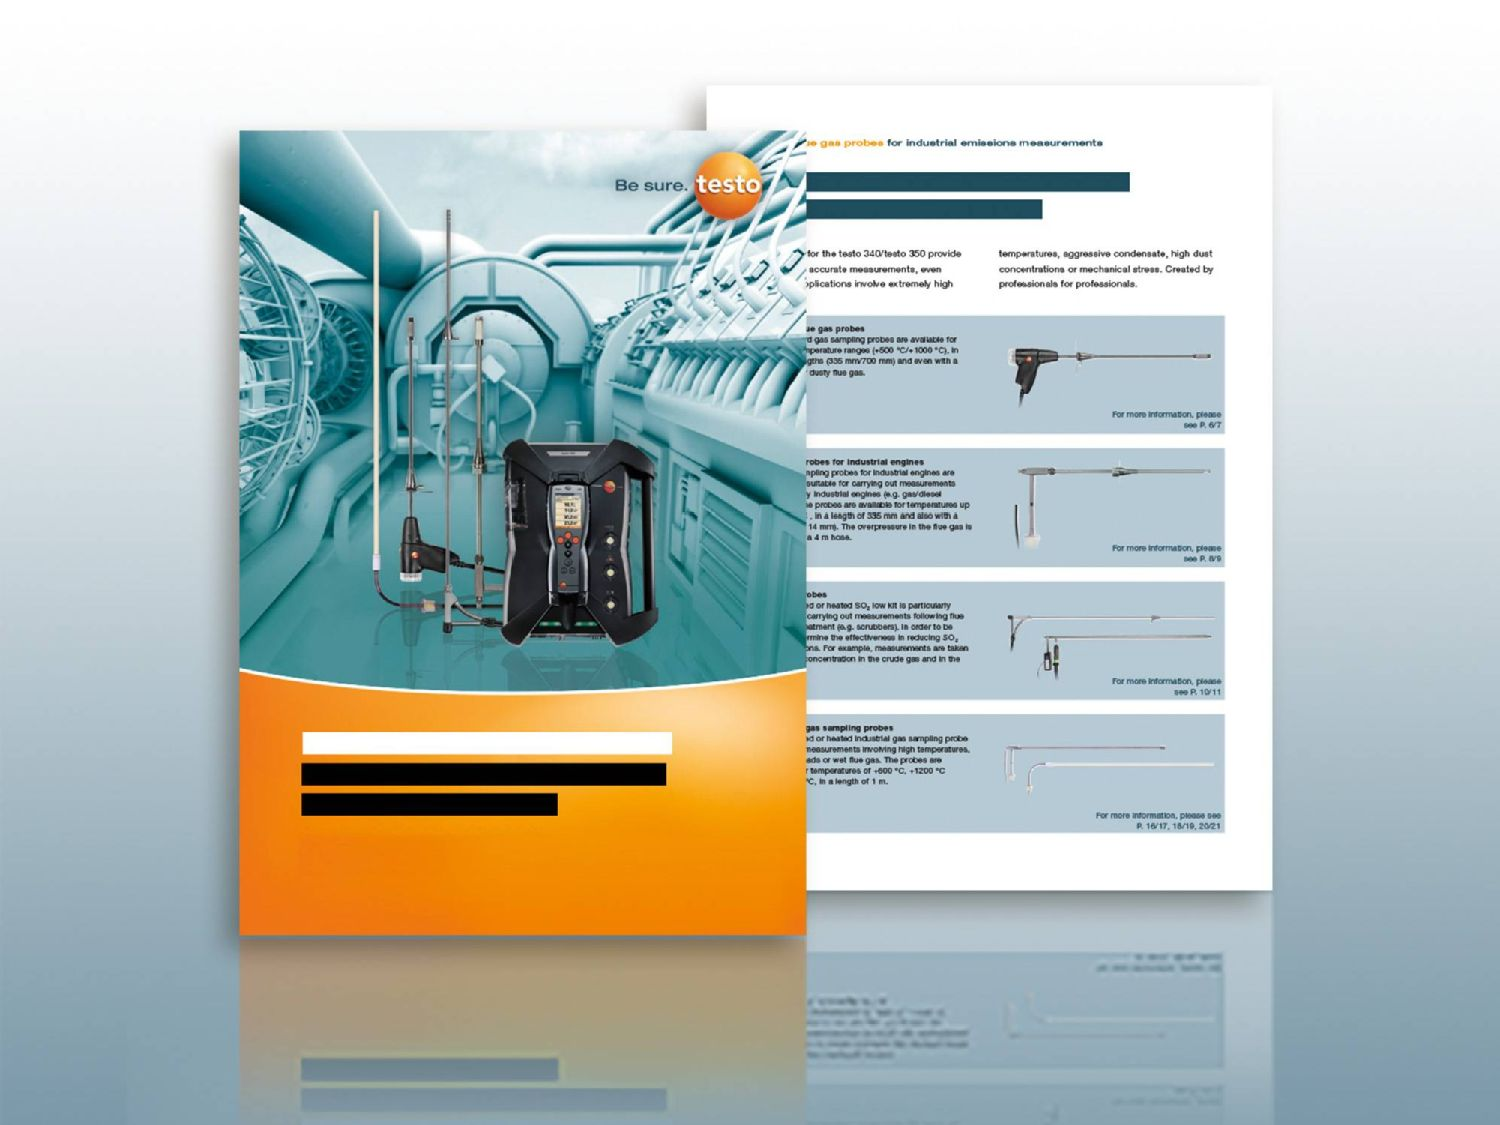 CHP-Brochure-Industrial-Emission-Probes-2000x1500.jpg